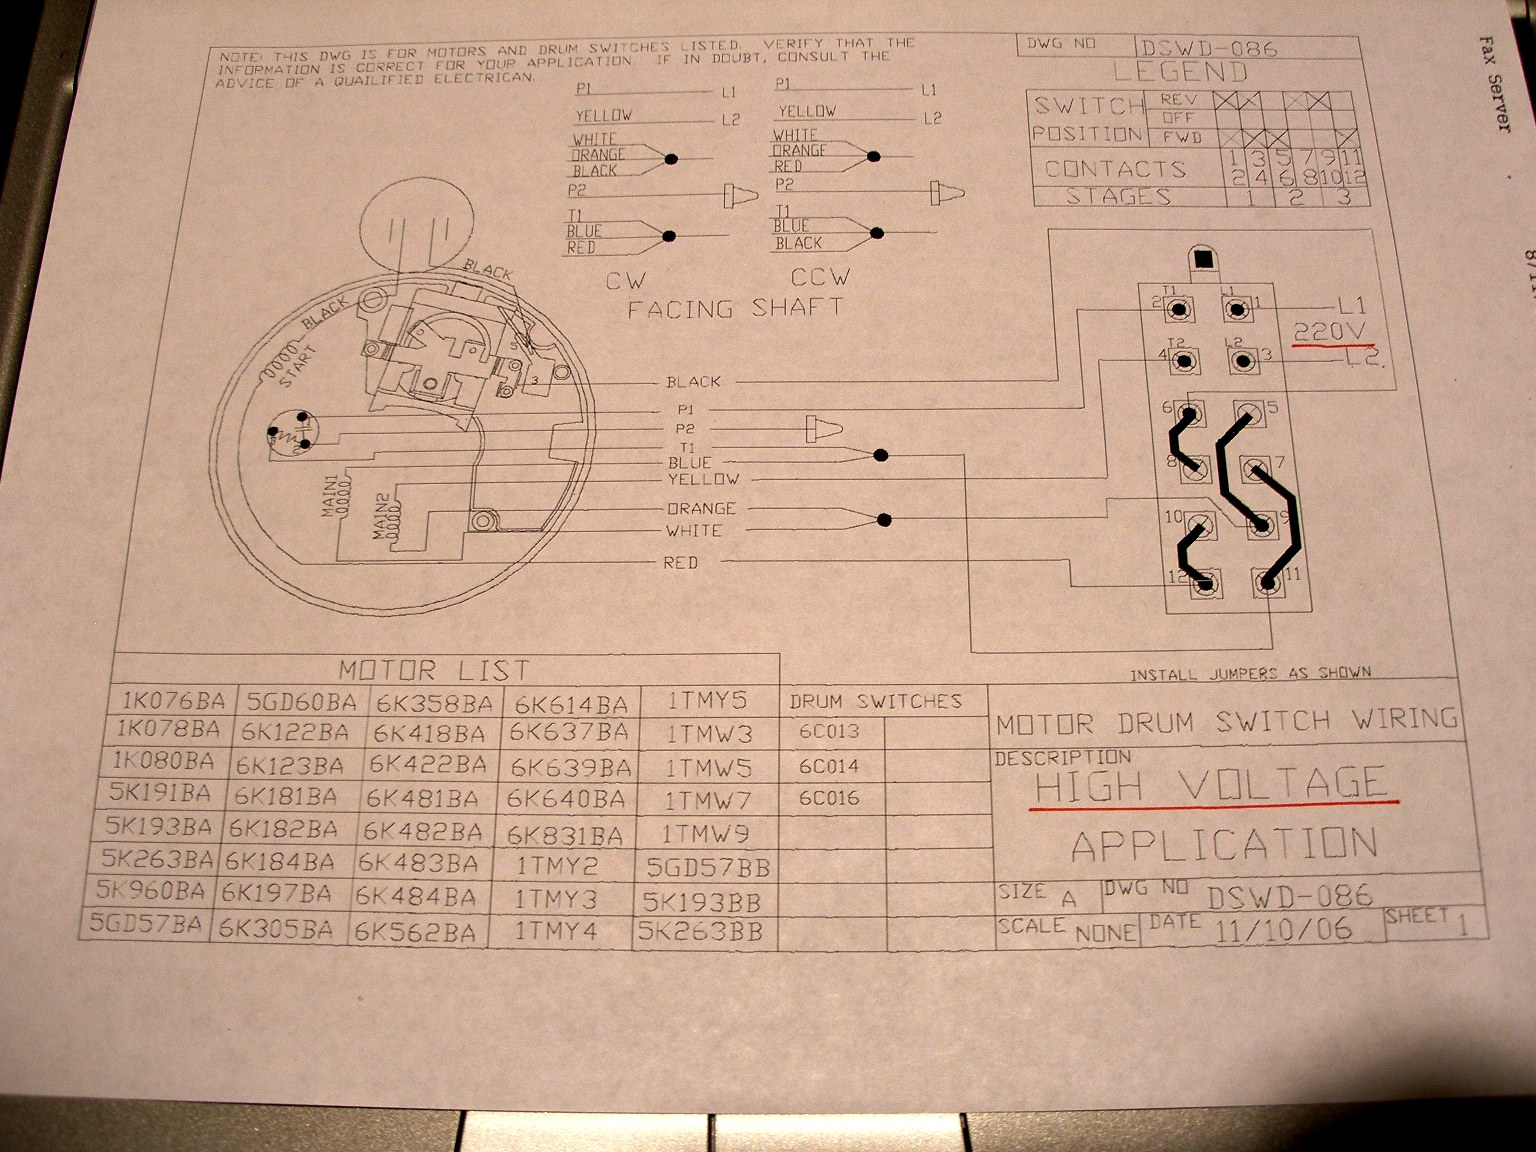 ao smith promax wiring diagram smart car 450 the motor on my boat lift quit it was a open